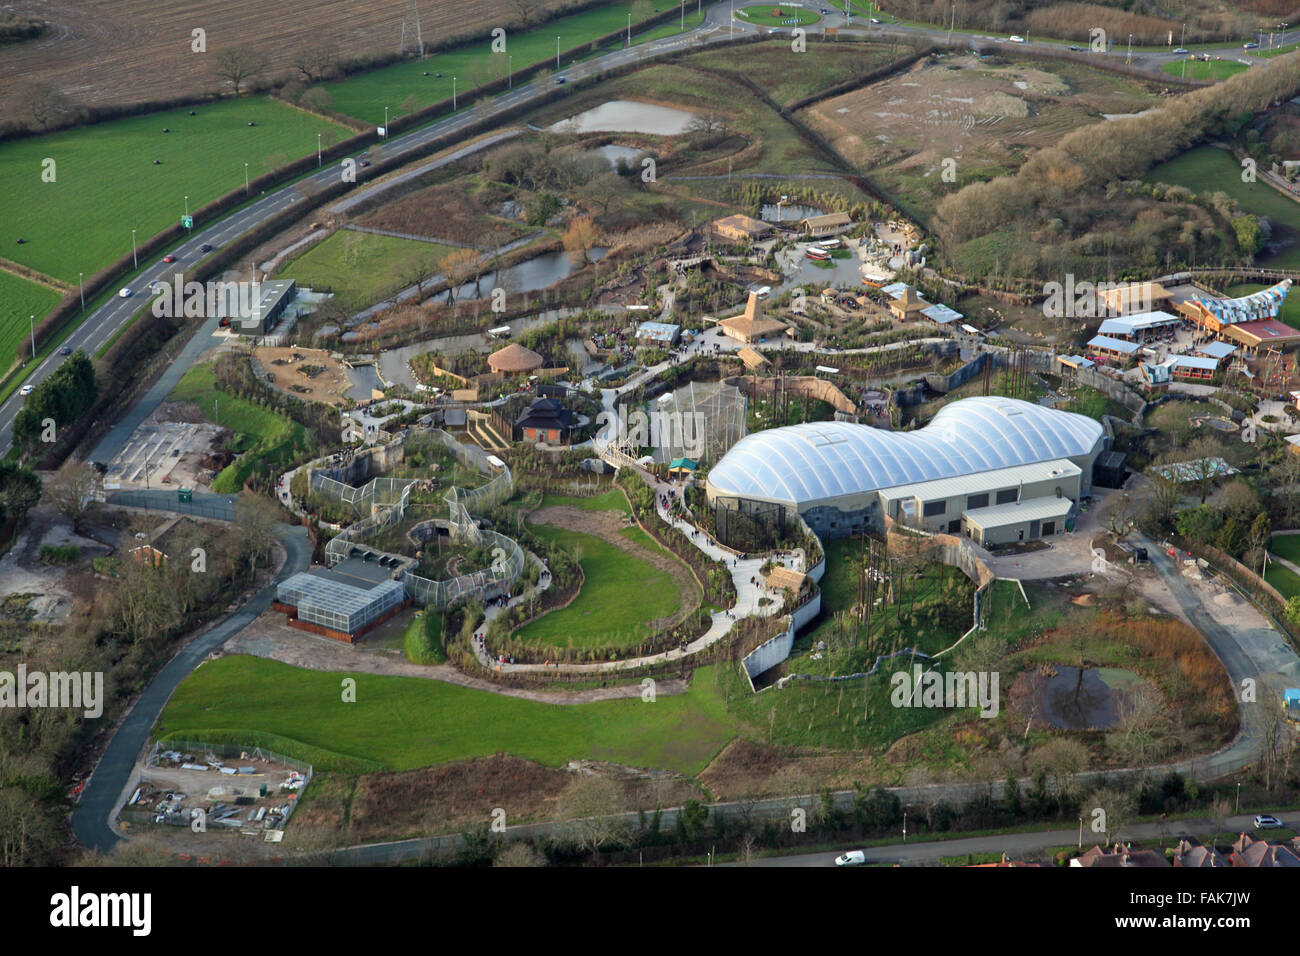 aerial view of Chester Zoo, Cheshire, UK Stock Photo